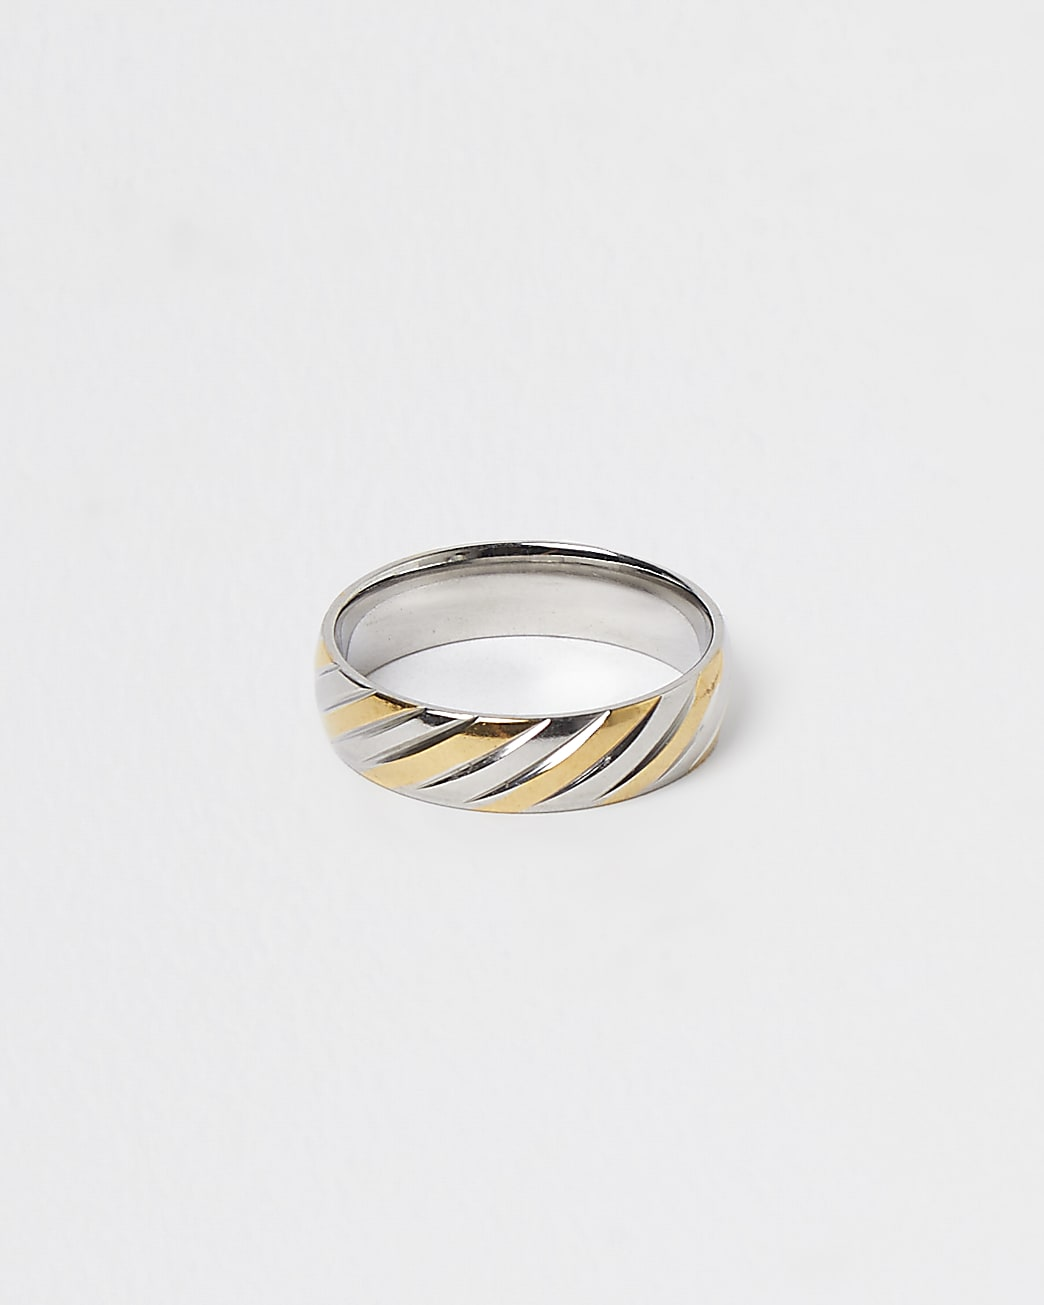 Silver and gold twist steel band ring